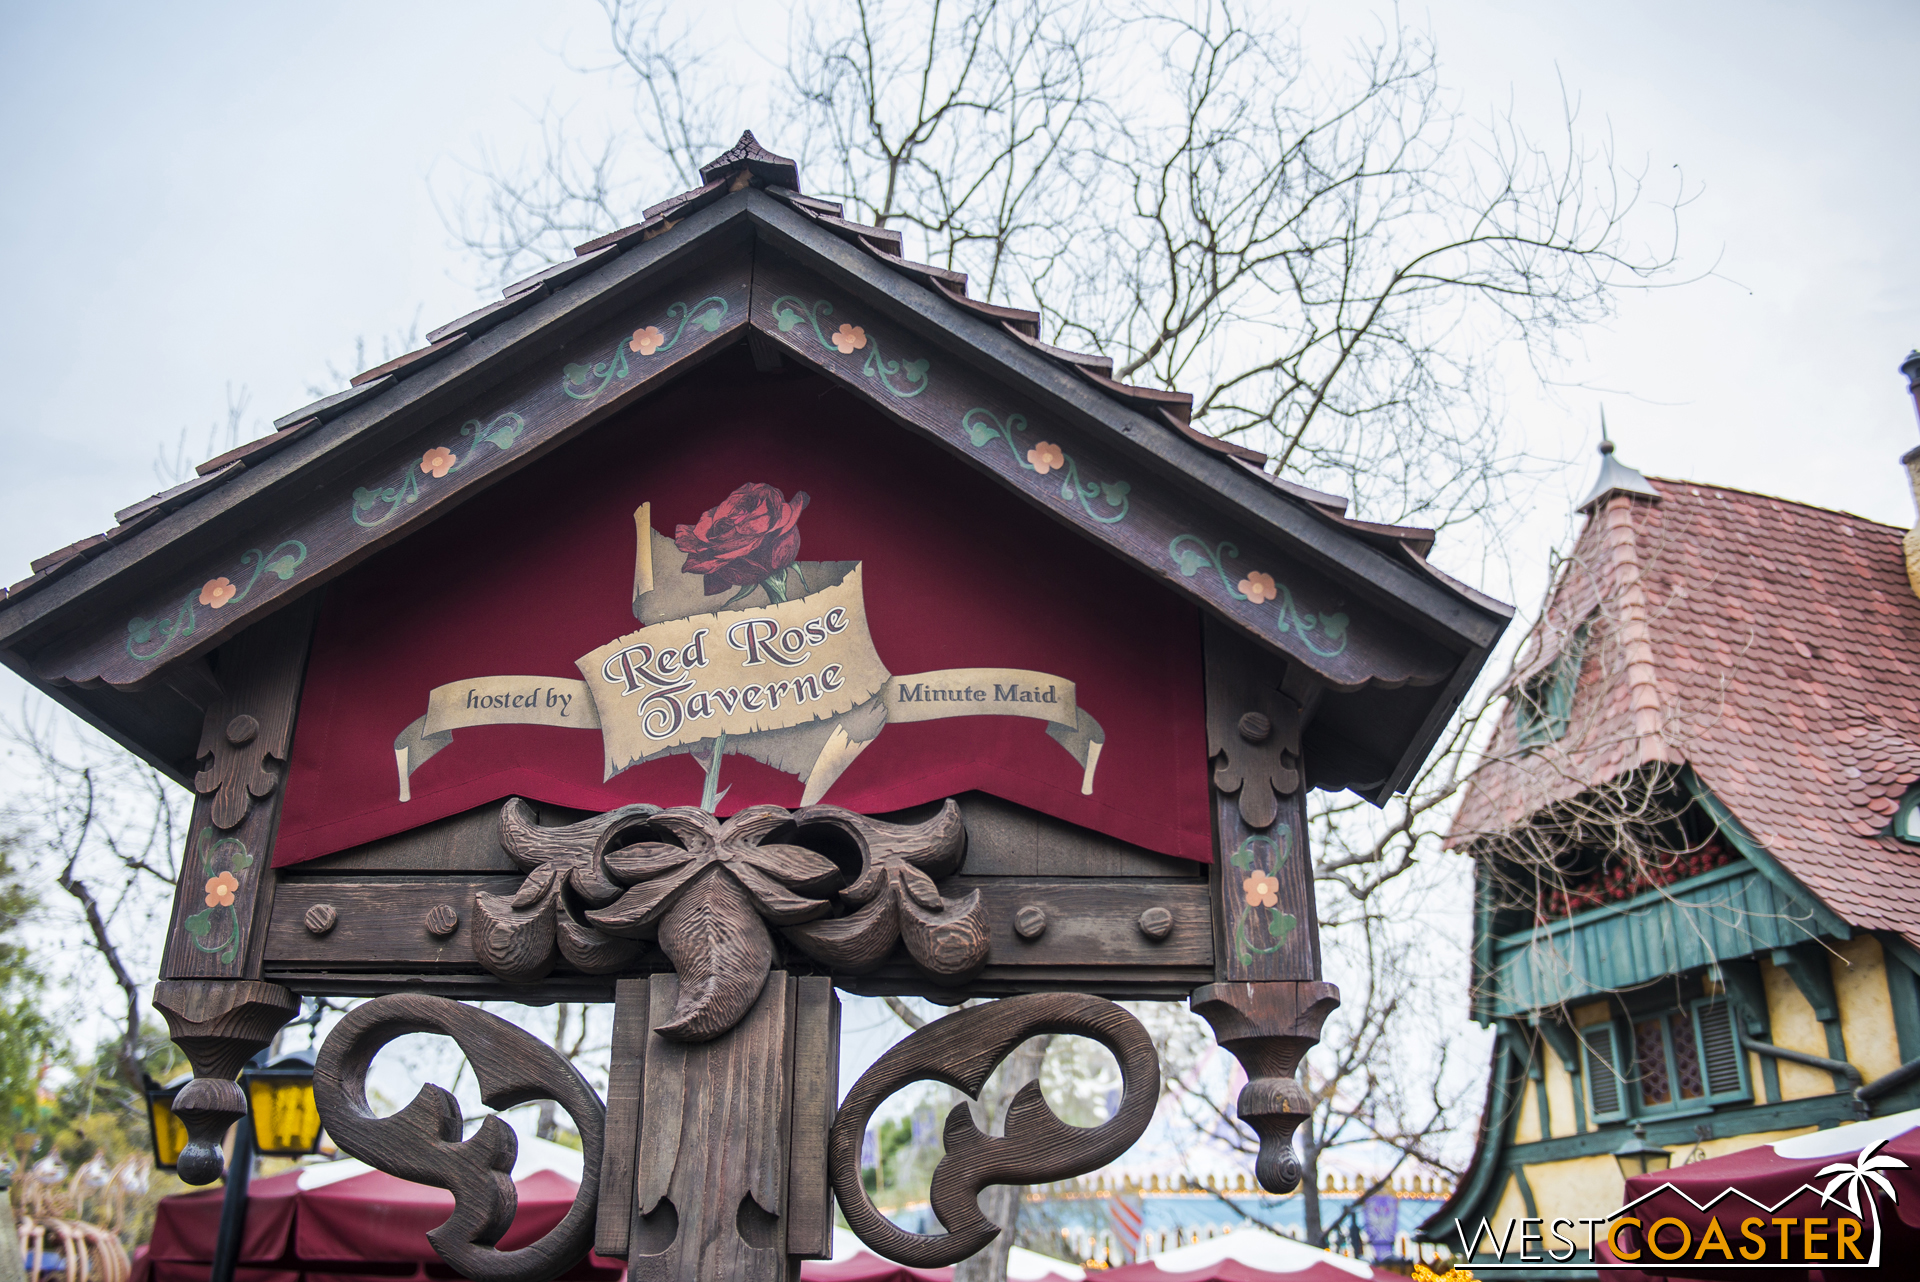 The Village Haus sign outside has been transformed into something a bit more French. Just a bit, though.